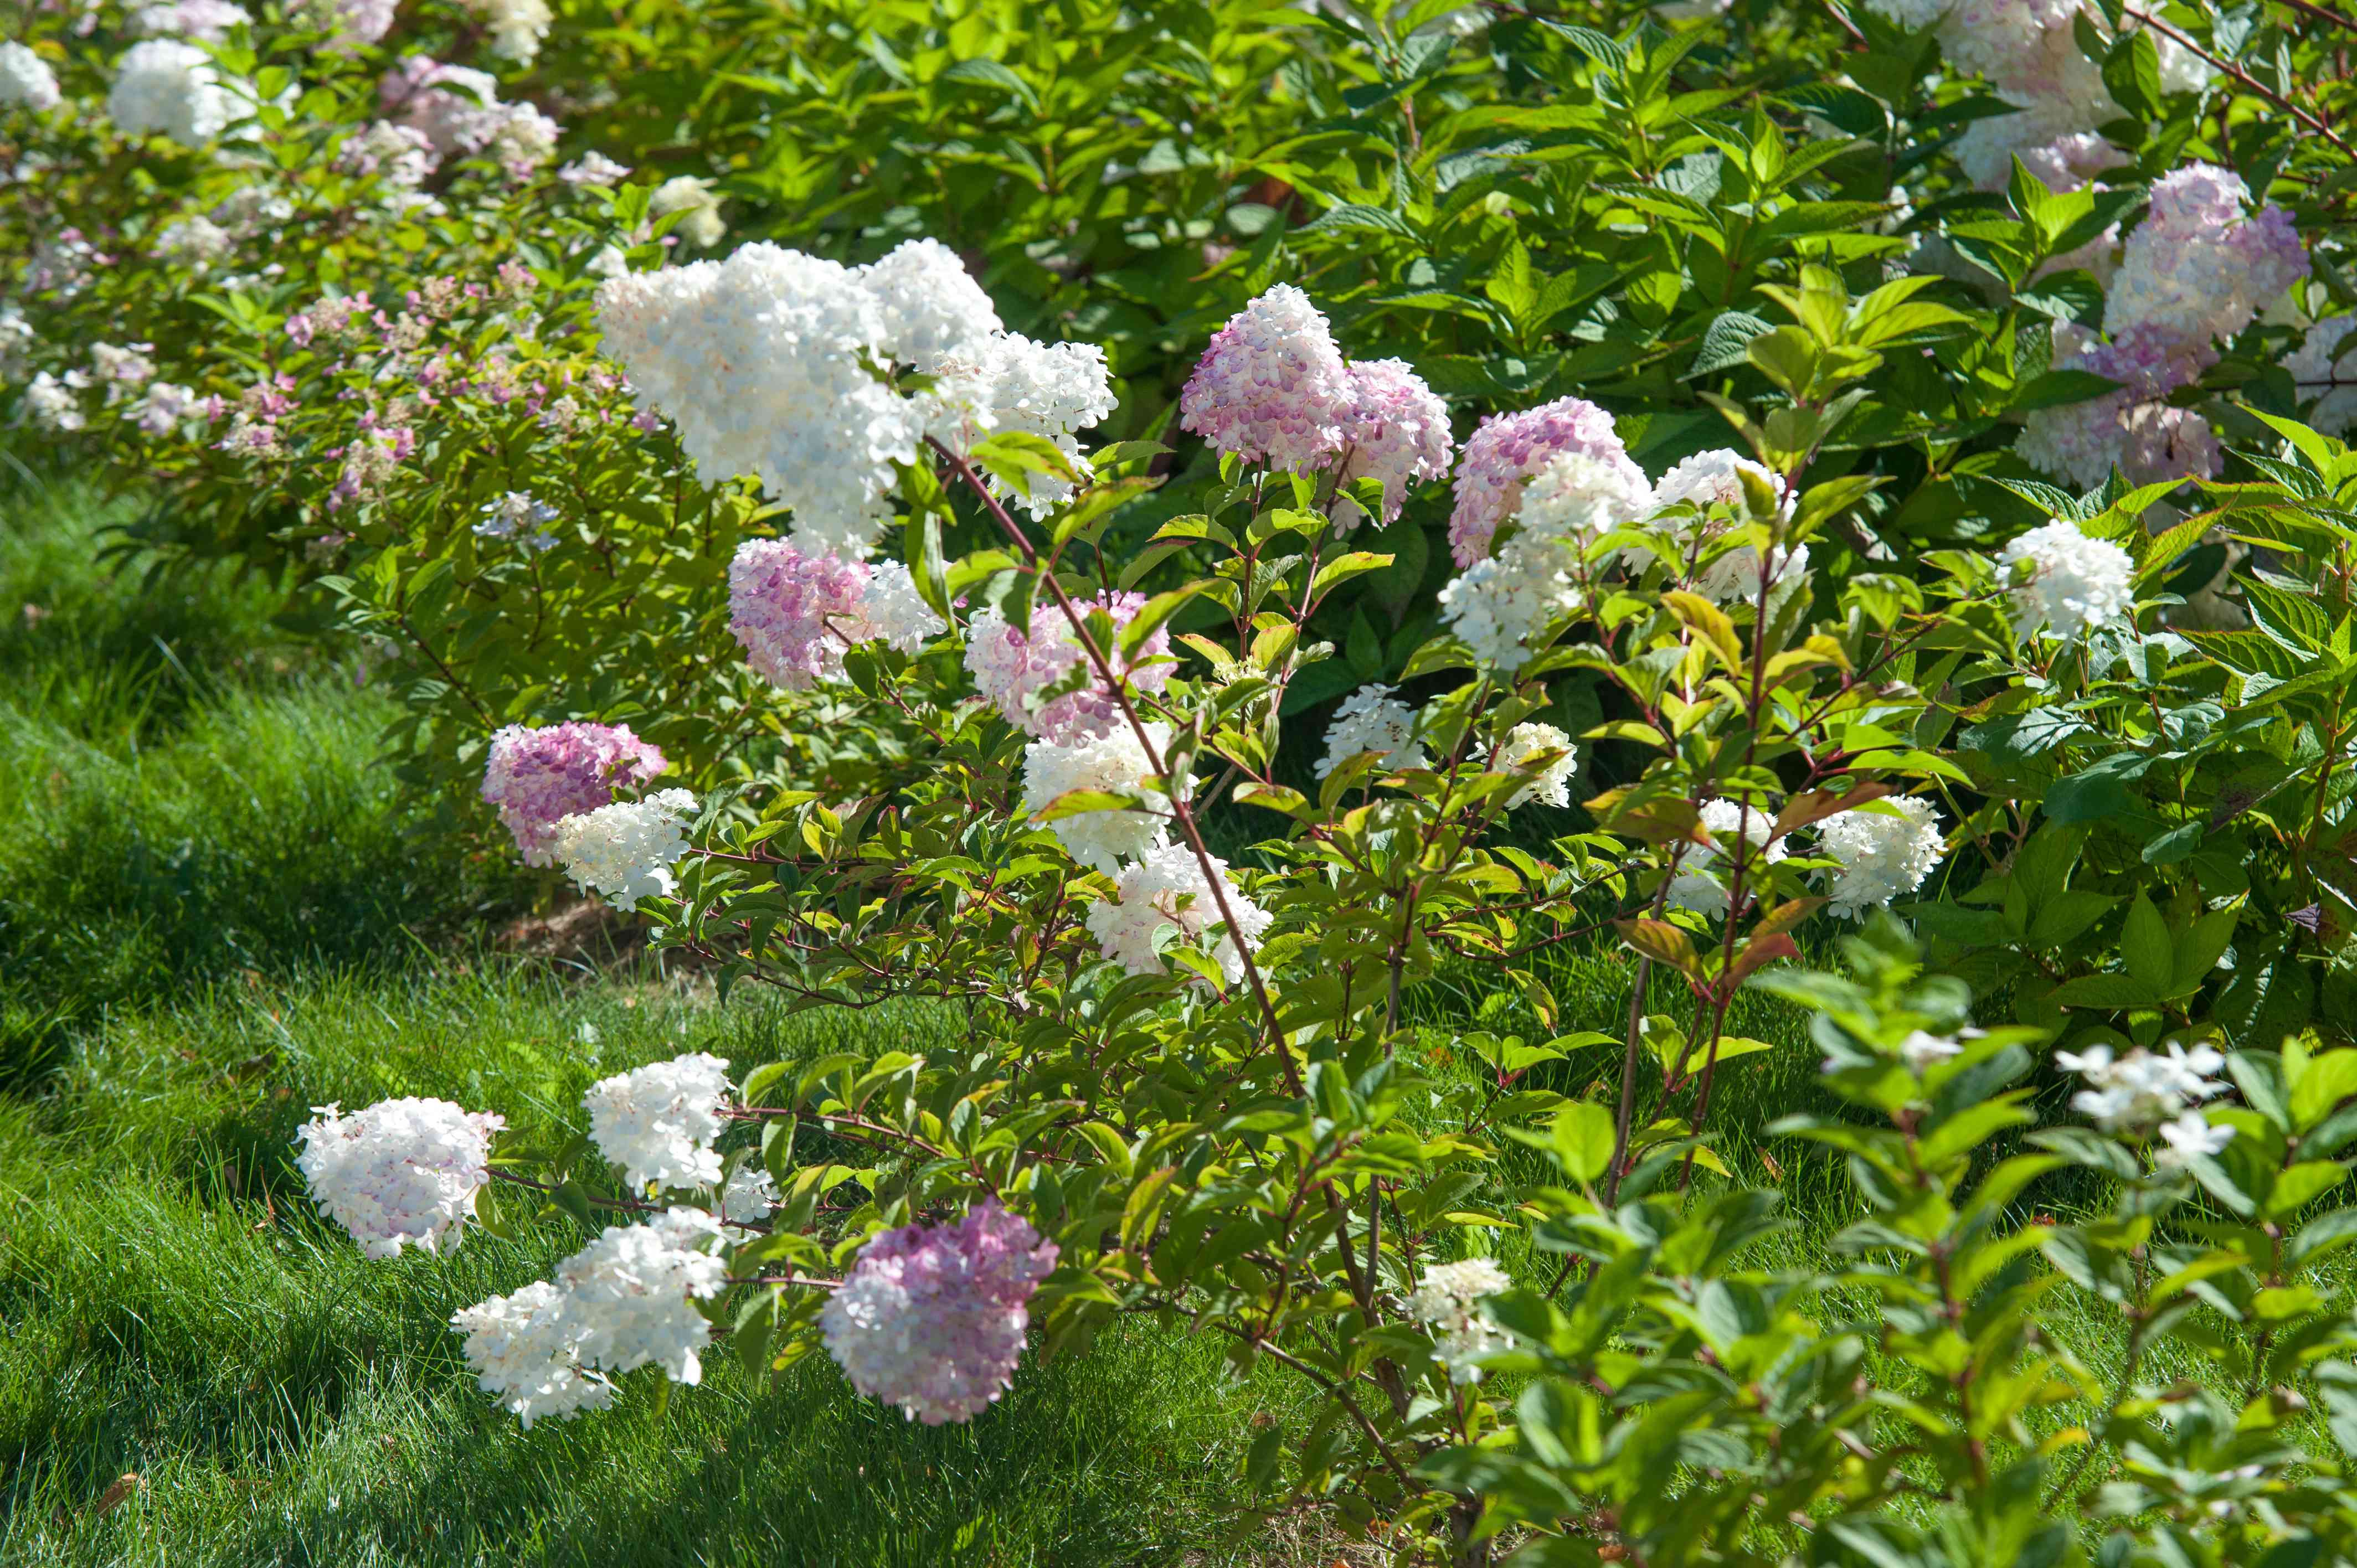 Strawberry vanilla hydrangea on long thin stems with white and pink flower heads in between branches